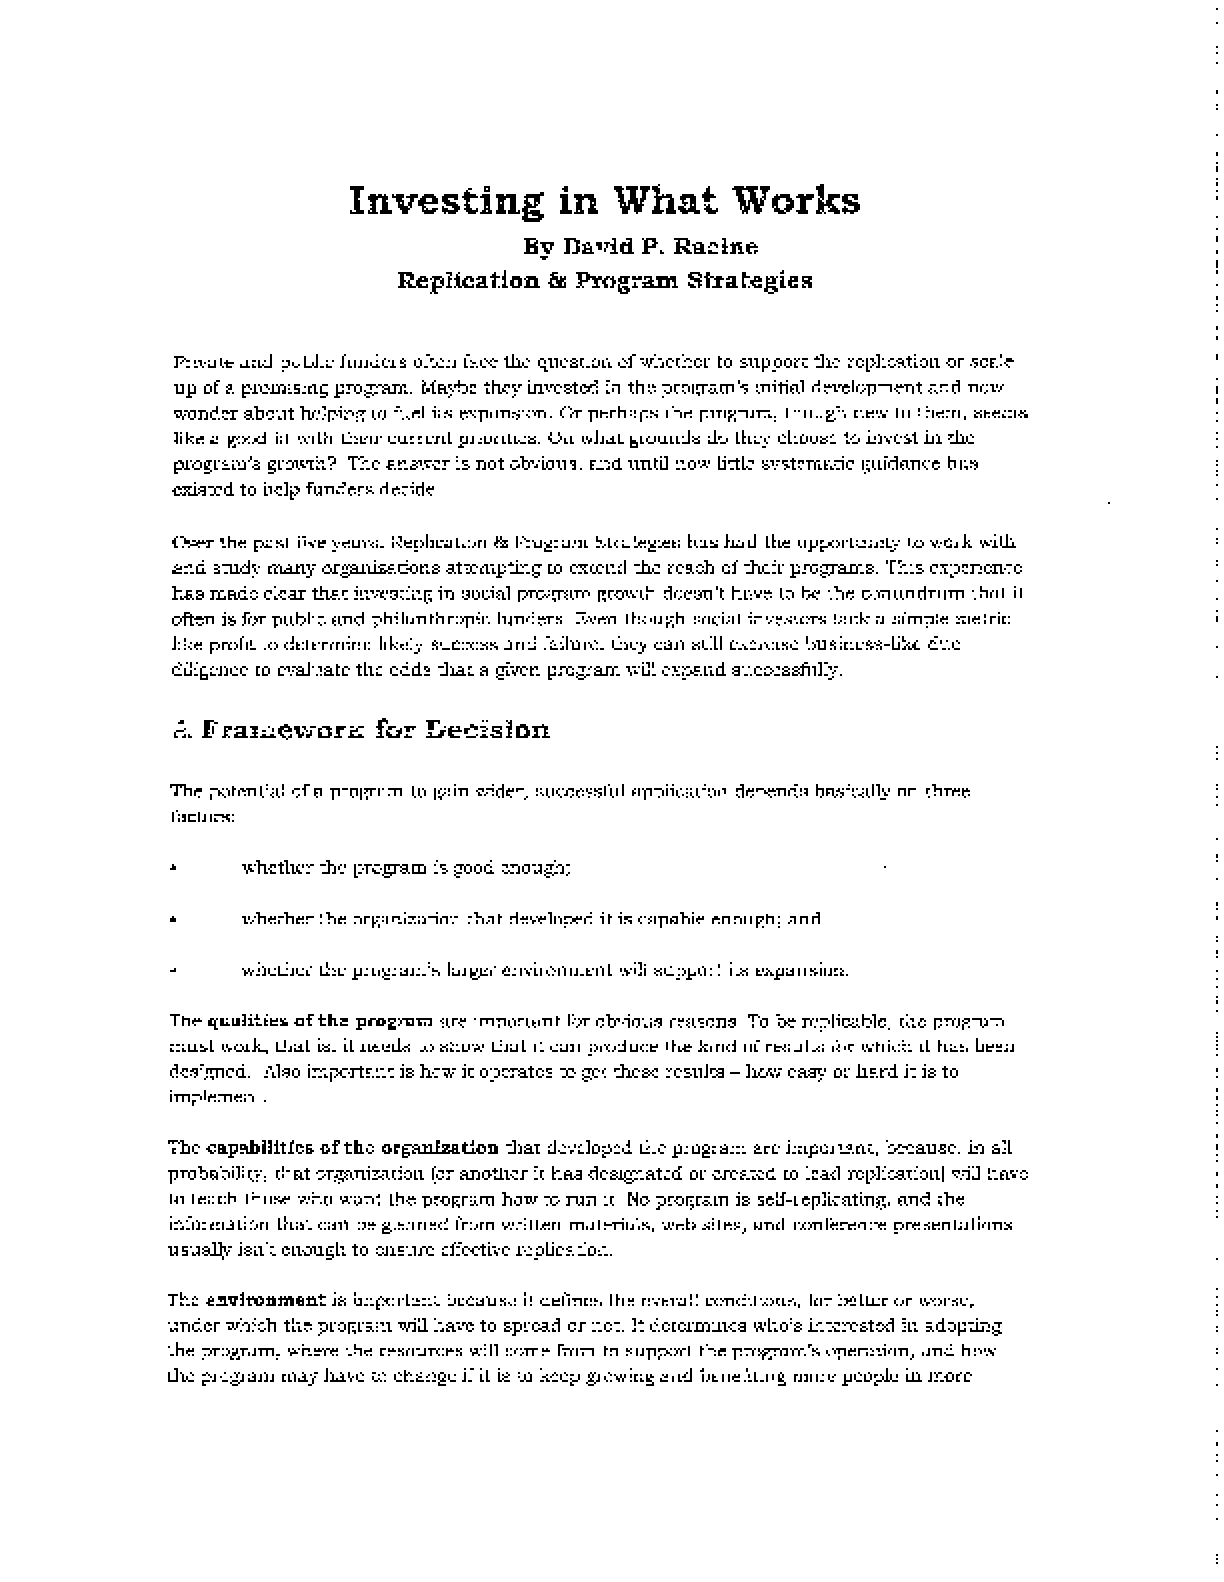 Investing in What Works